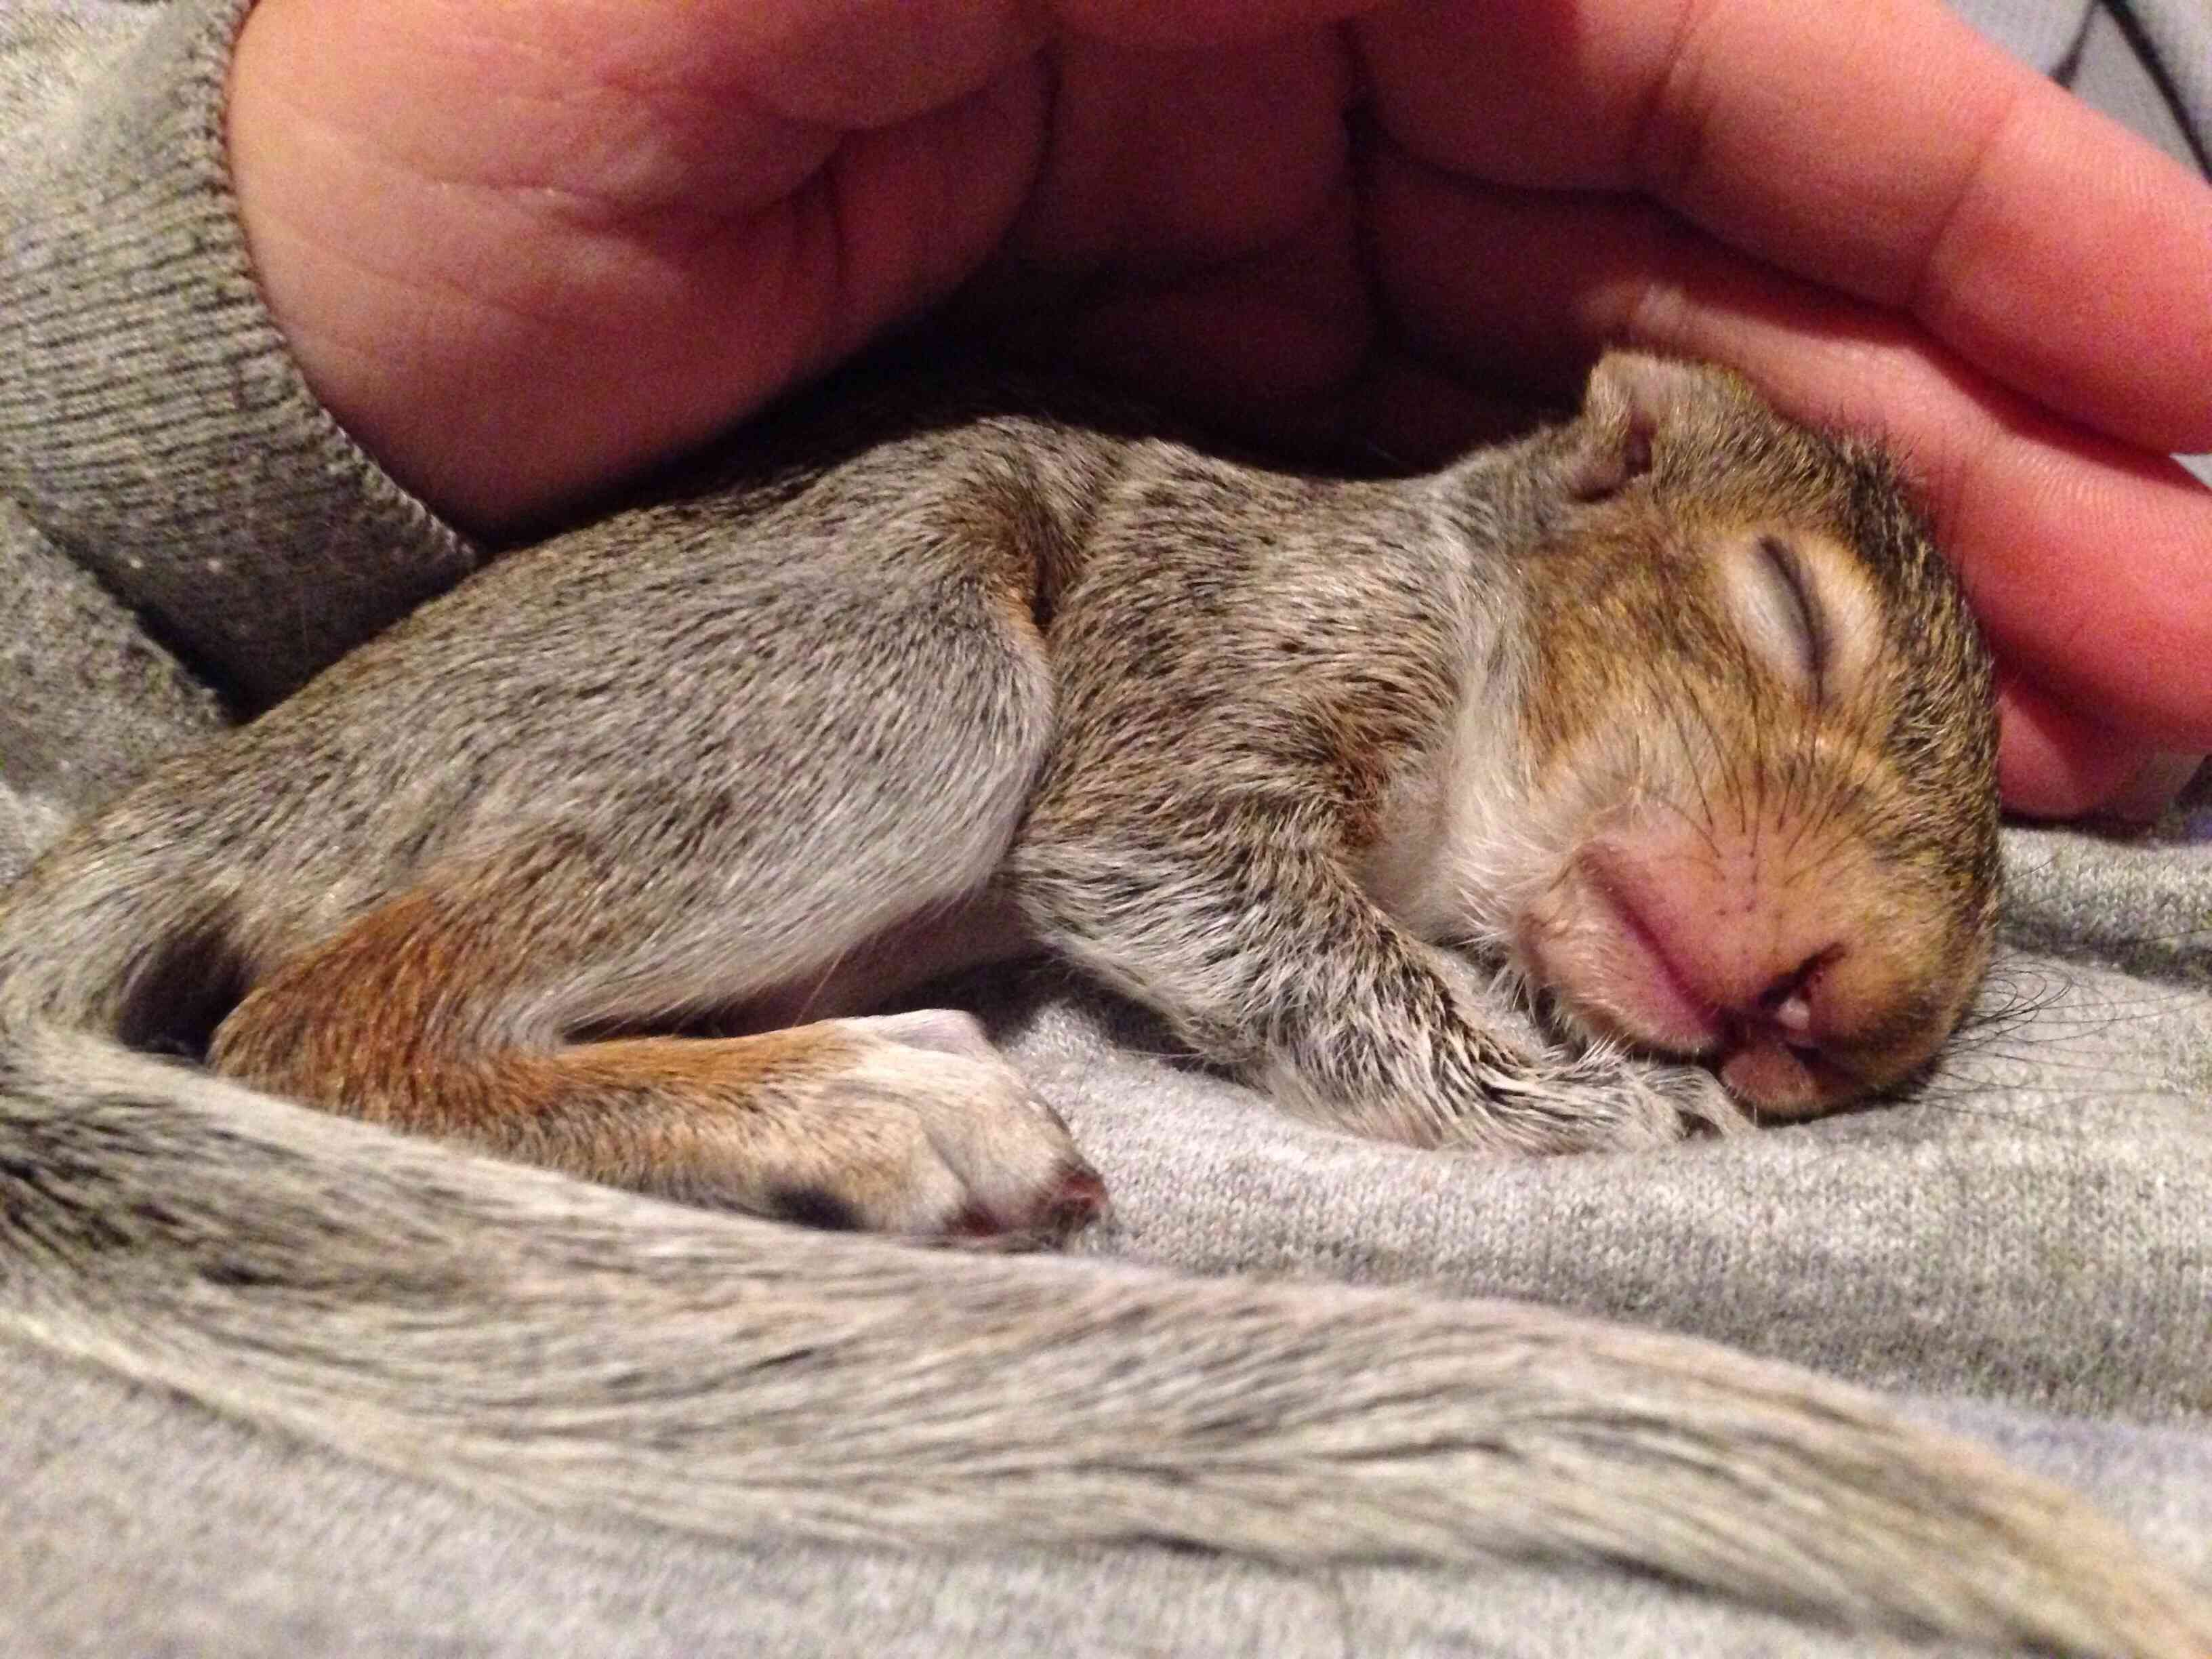 Baby squirrel sleeping on a person